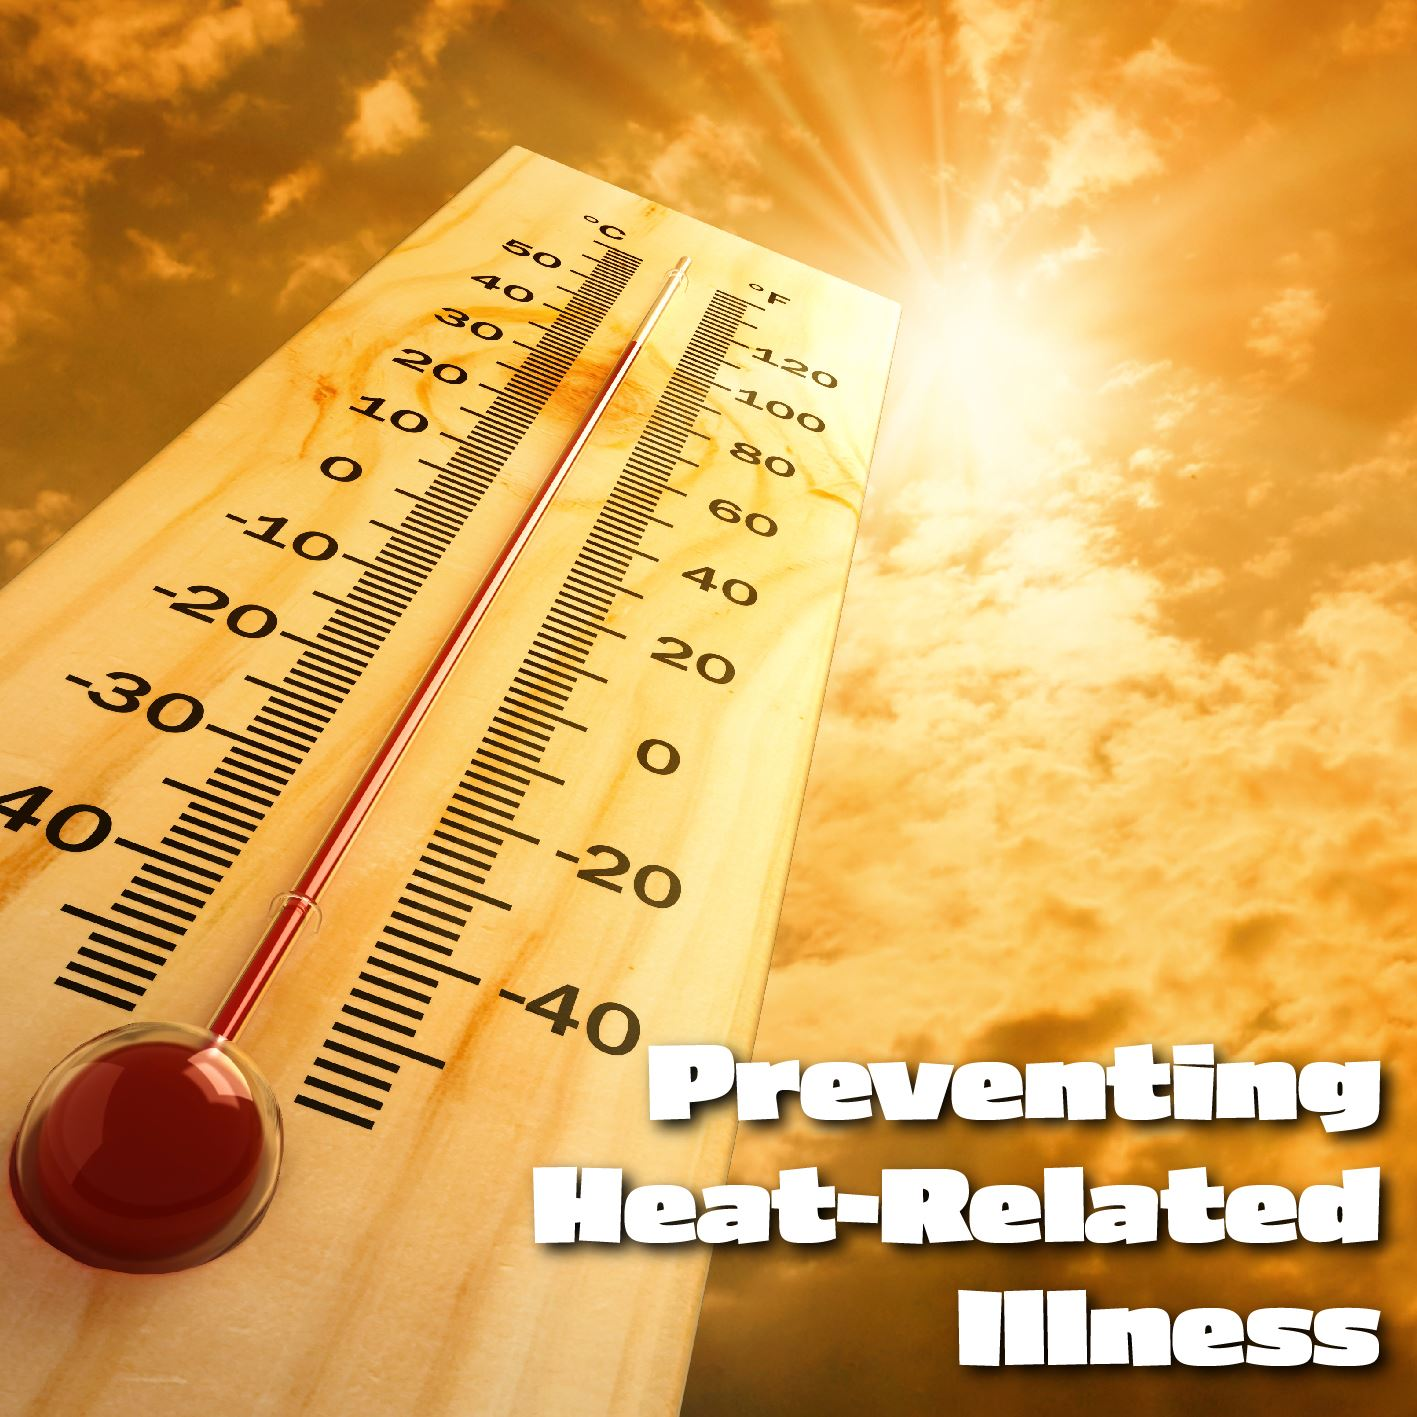 Preventing Heat Related Illness. Thermometer showing high temperature.